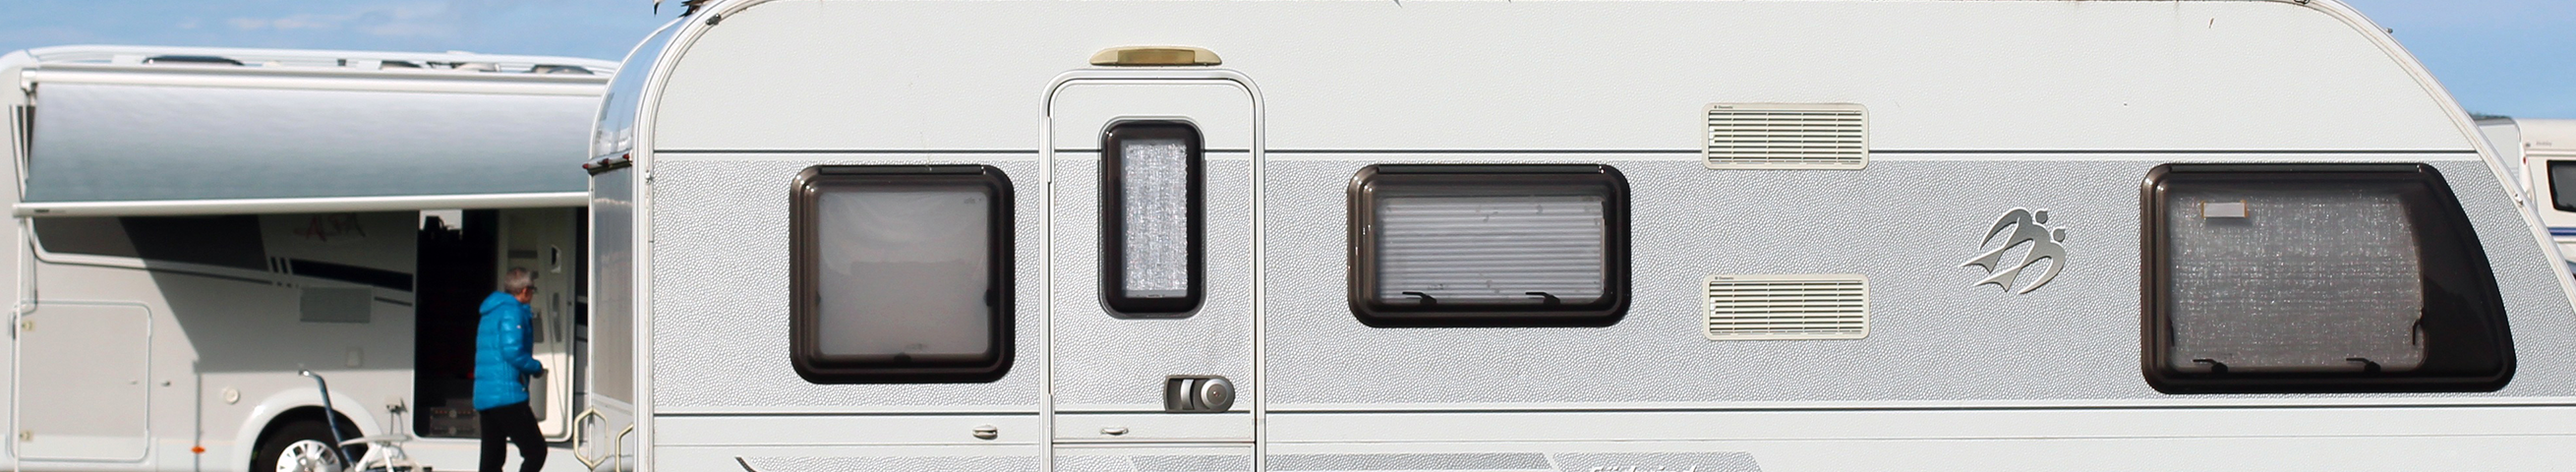 How to Repair and Maintain Caravan Windows